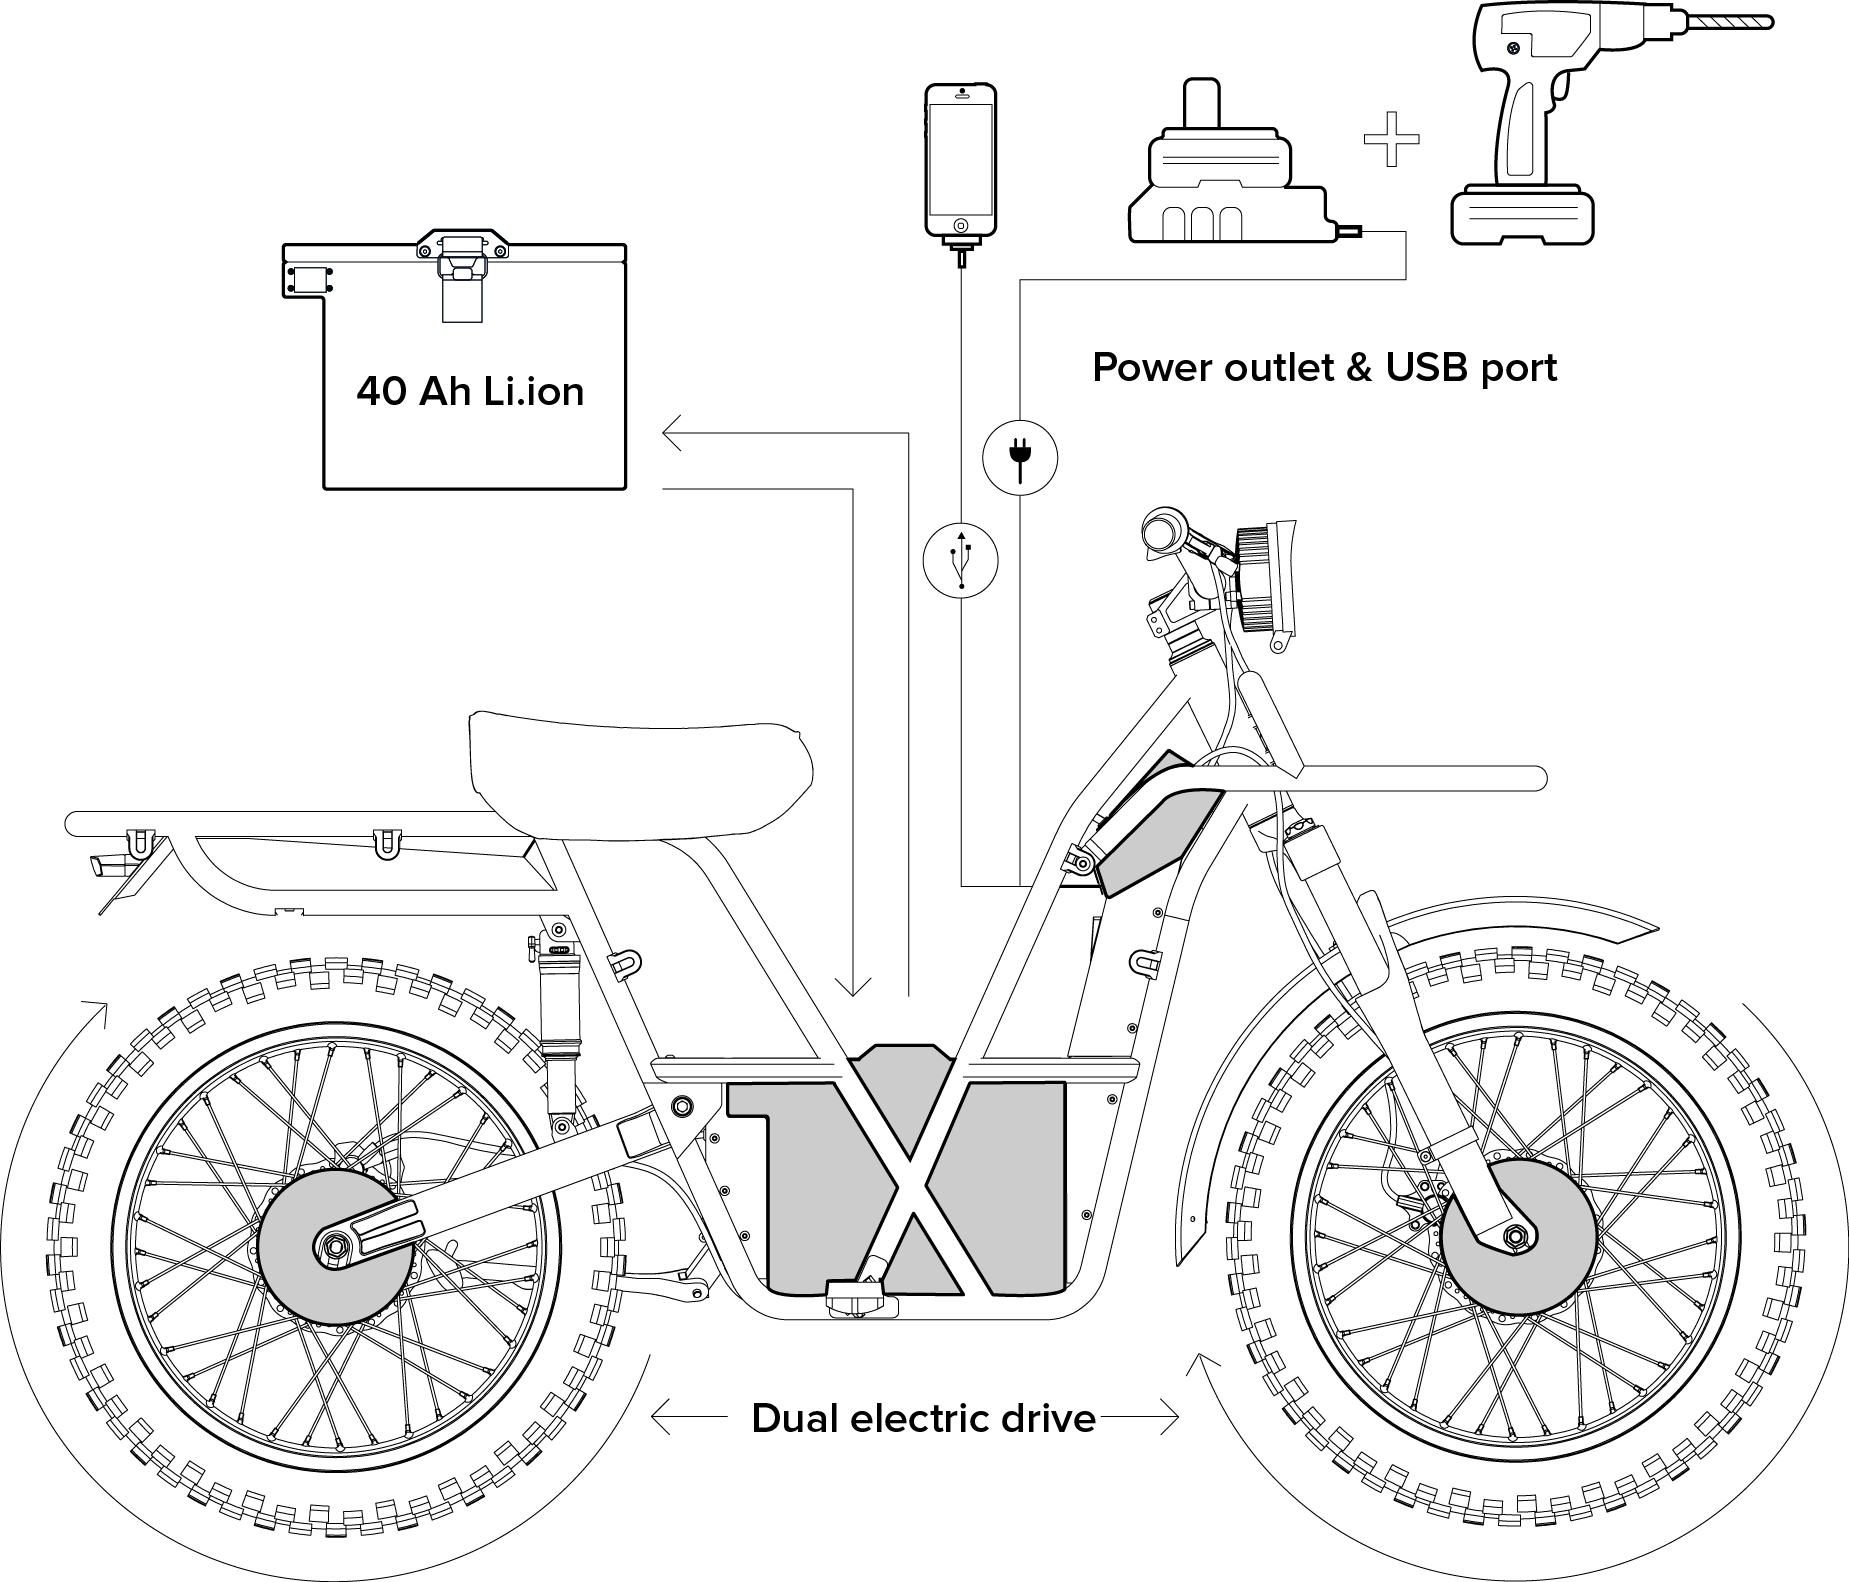 Pix 6:Ubco Bike Diagram.jpg